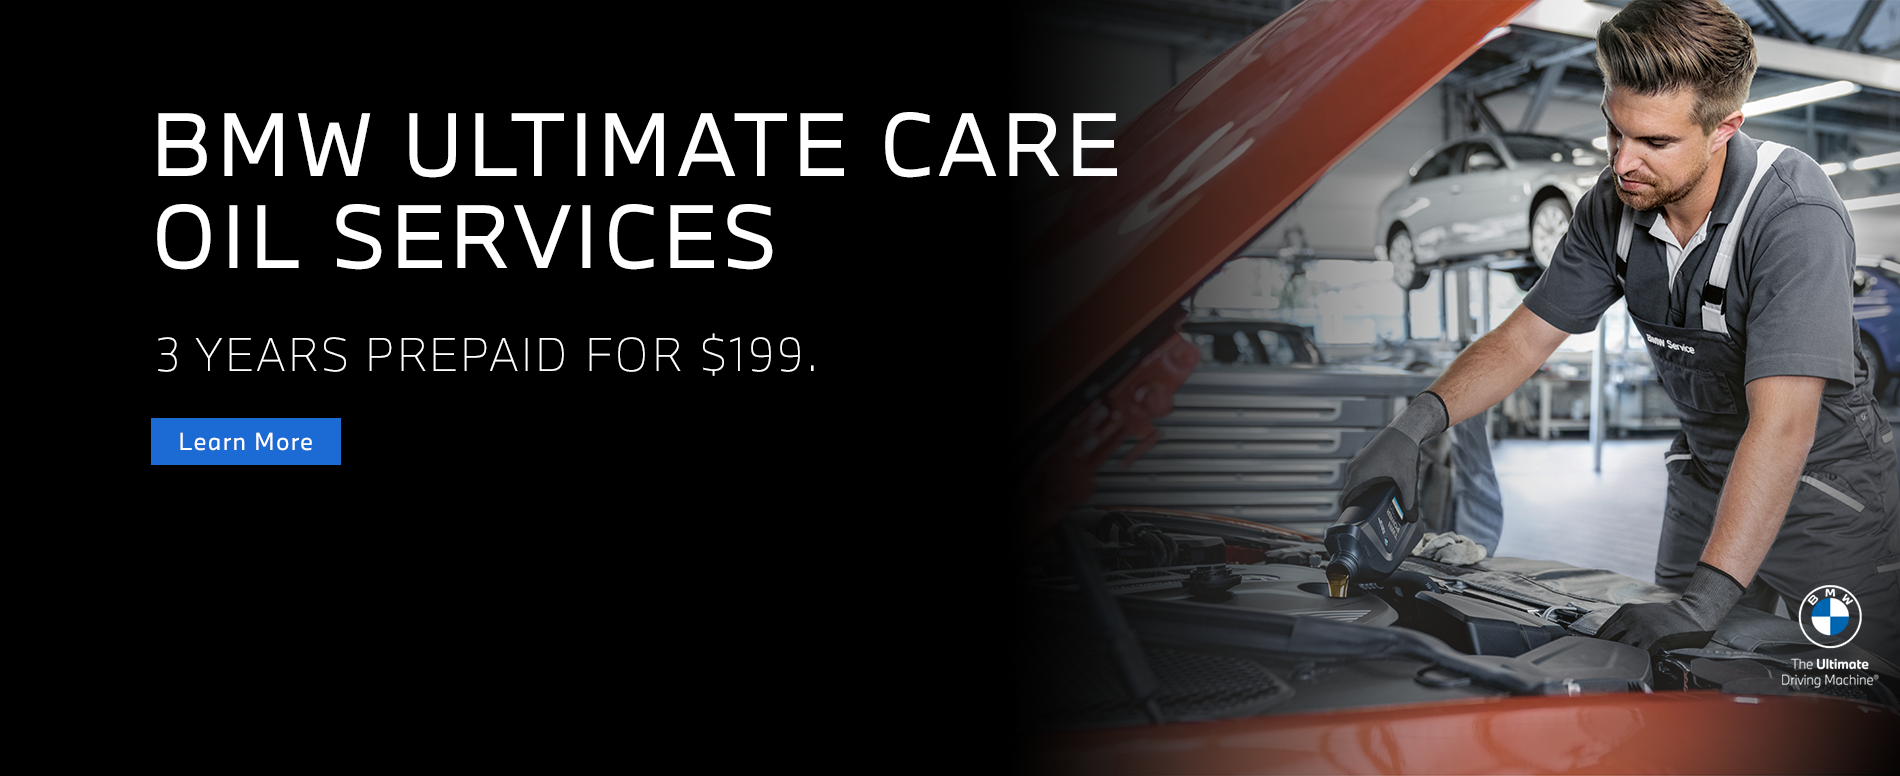 3 Years of Prepaid Oil Services for just $199, the BMW Ultimate Care Oil Services Package available at Otto's BMW.